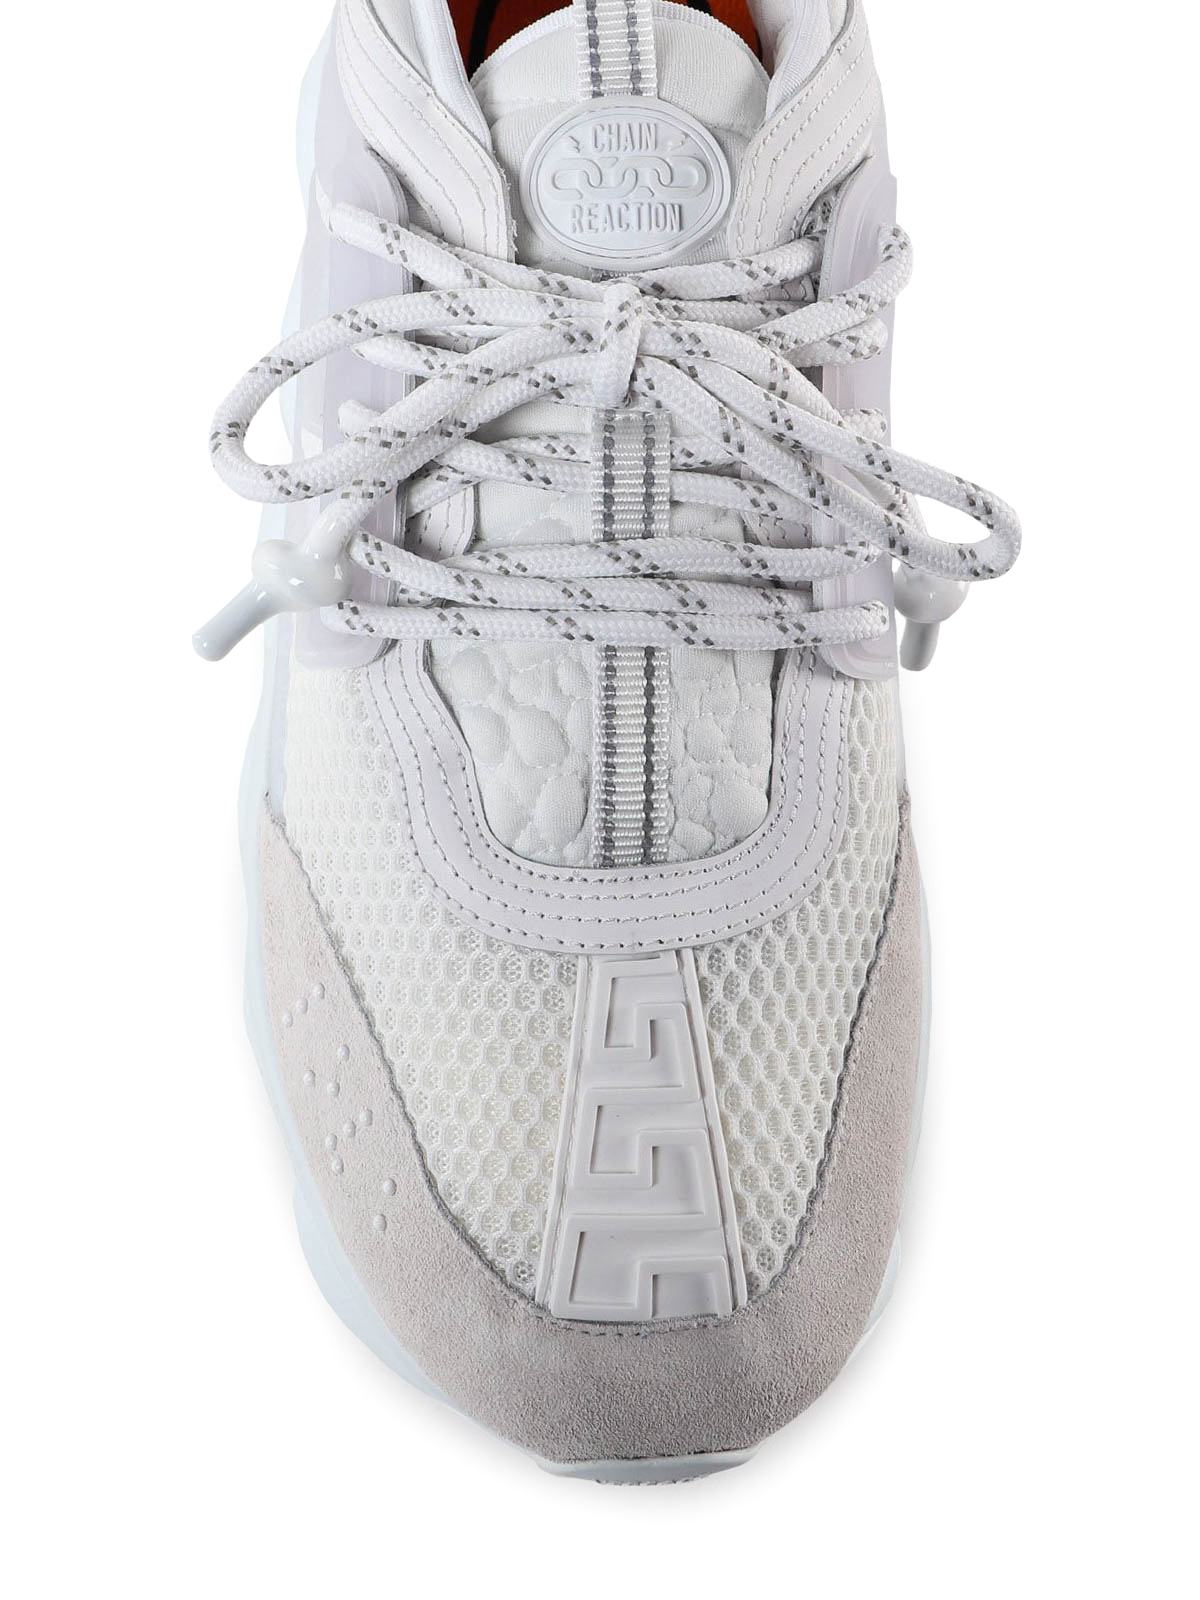 Versace - Chain Reaction white chunky sneakers - trainers ...